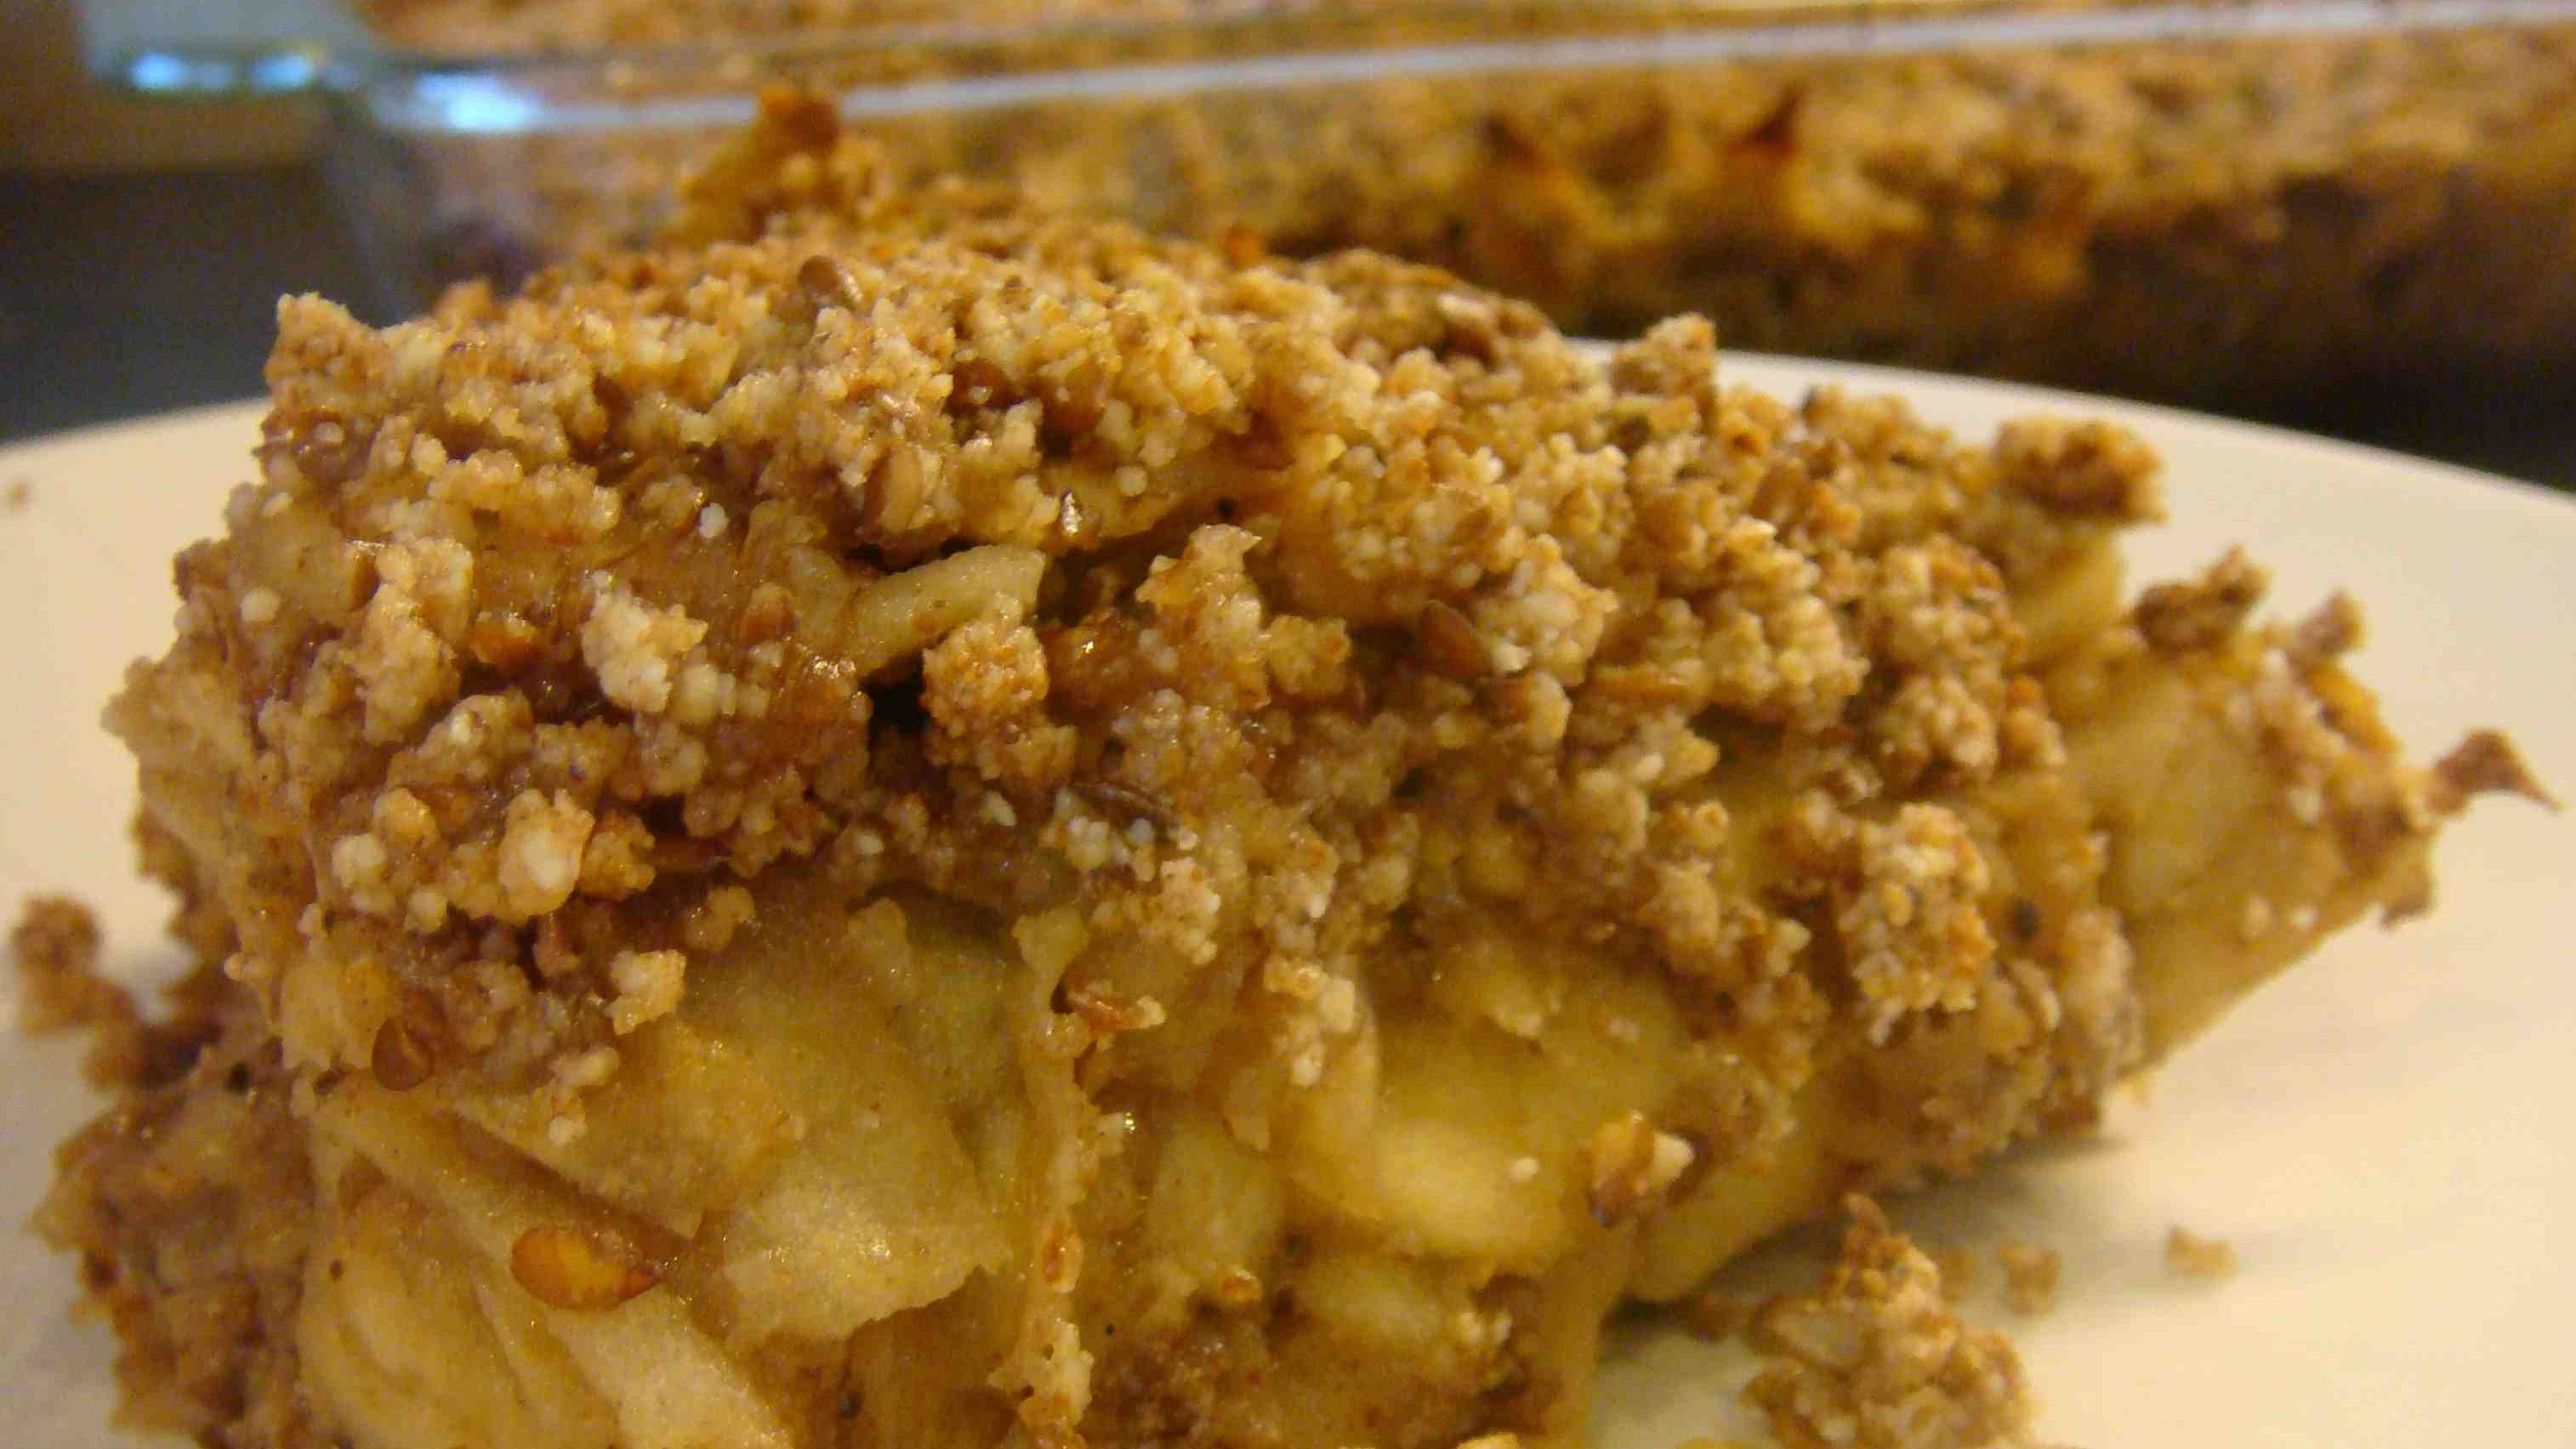 A portion of crumble on a plate in front and the glass baking dish full at rear.